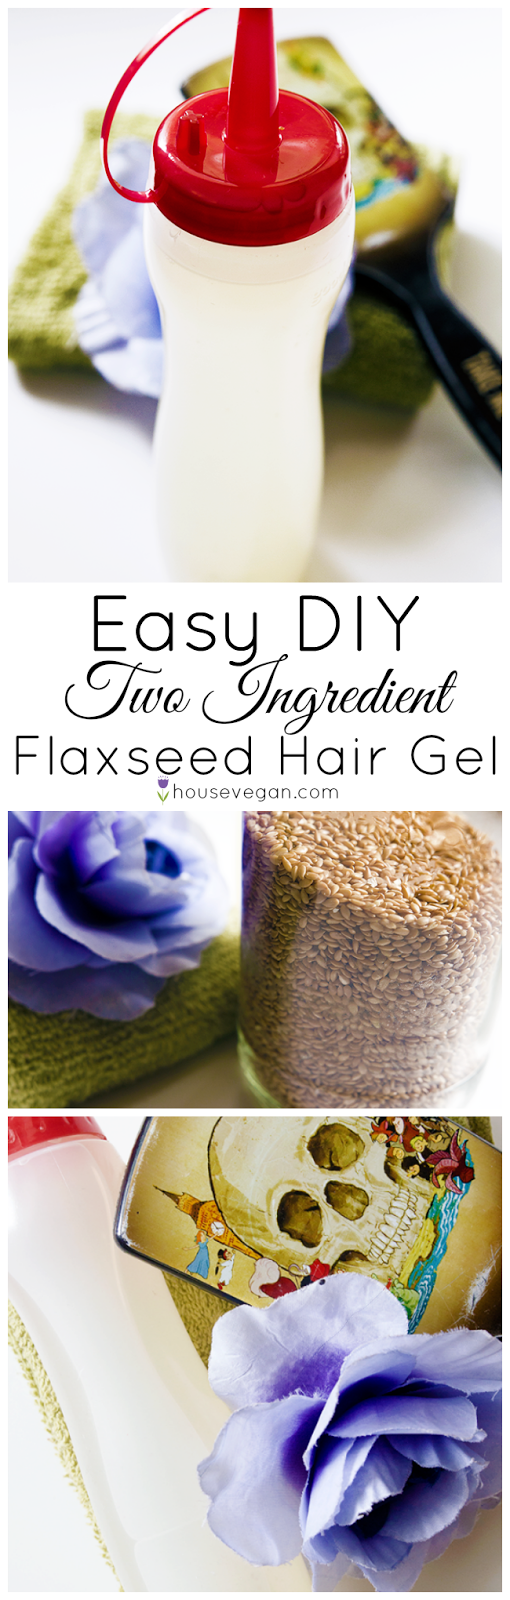 best diy flaxseed gel, diy flaxseed gel, diy flaxseed gel for hair, diy flaxseed hair gel, diy moisturizing flaxseed gel, easy diy hair gel, easy homemade hair gel, easy homemade hair gel recipe, easy recipes for hair gel, homemade hair gel alternatives, homemade hair gel flax, homemade hair gel flax seeds, homemade hair gel for curls, homemade hair gel natural, homemade hair gel substitute, homemade hair gel vegan, homemade hair gel with flax seeds, homemade hair gel without gelatin, how to make easy homemade hair gel, vintage vegan hair